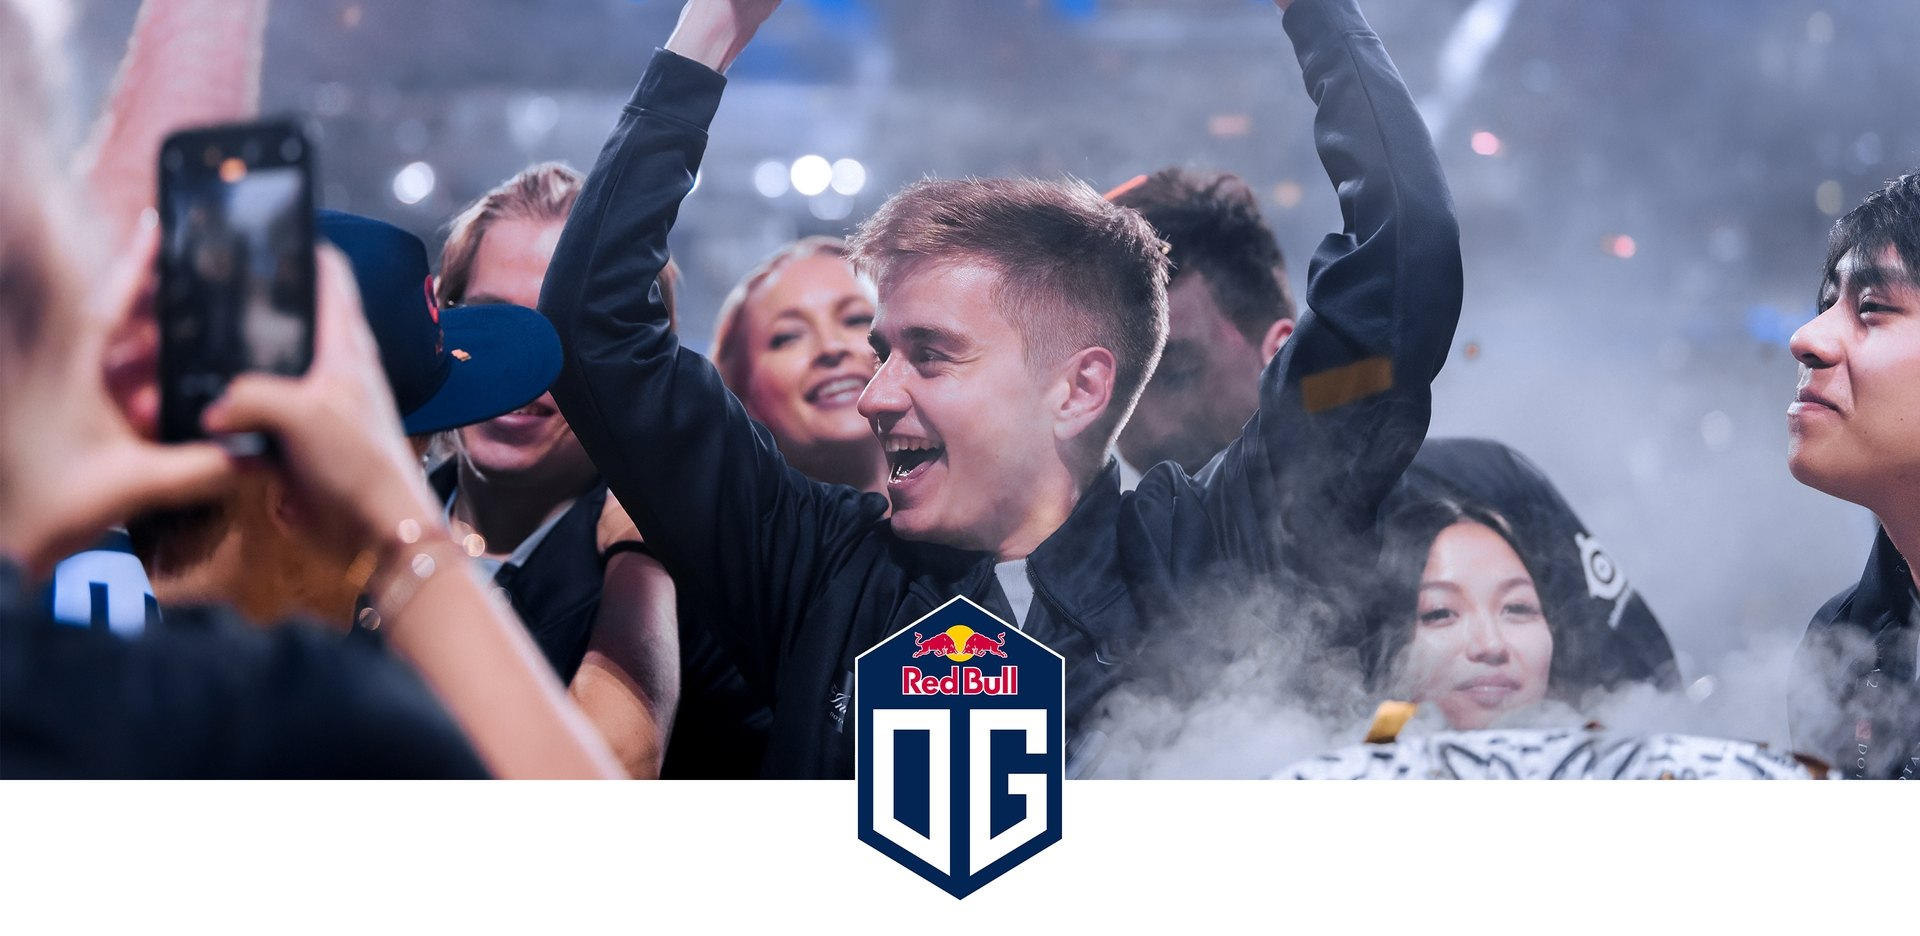 Team OG logo with them celebrating at a tournament